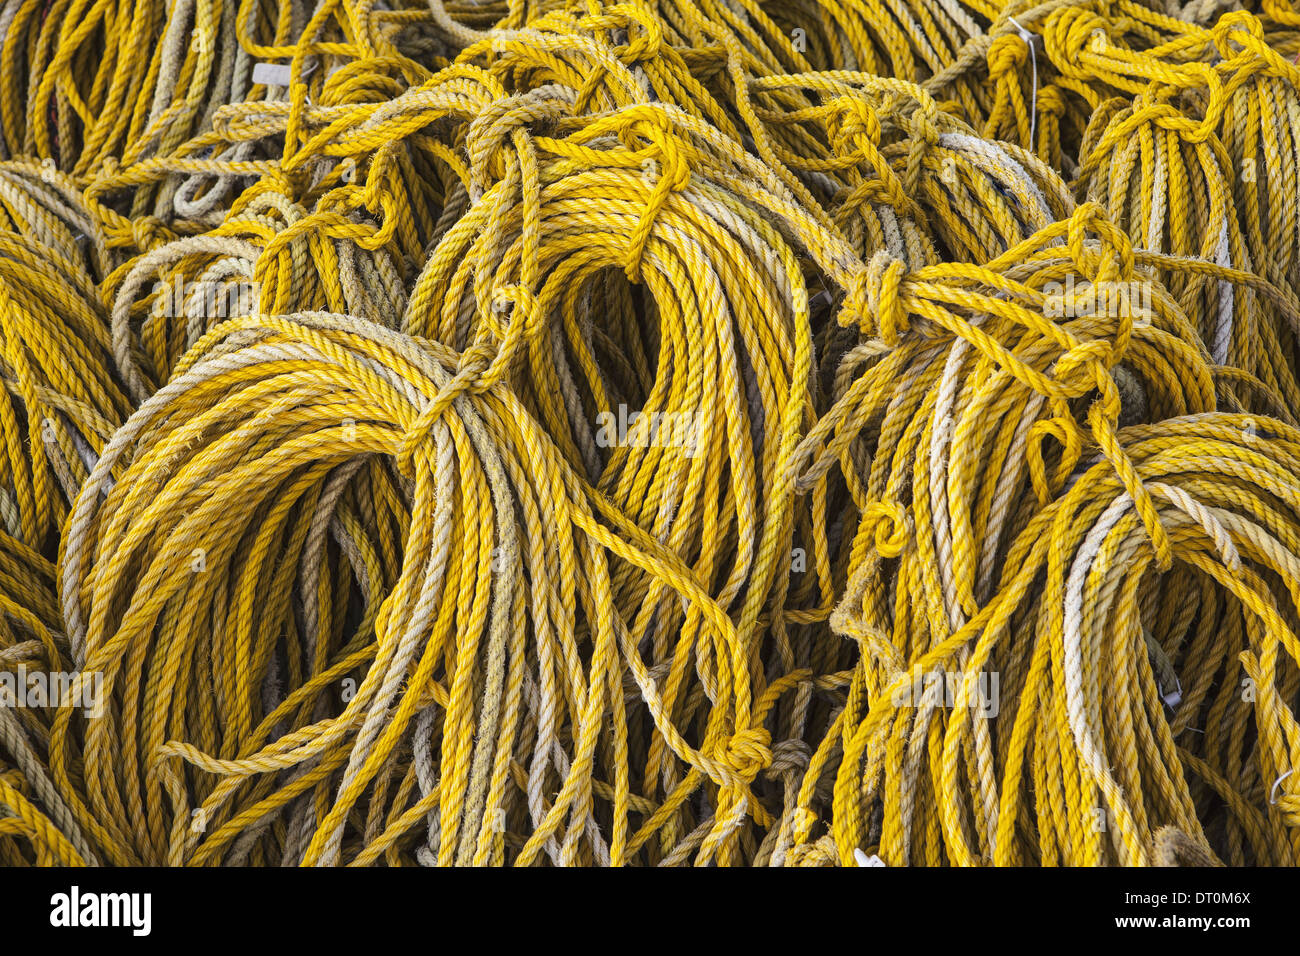 oysterville washington usa rows of coiled yellow rope commercial, Reel Combo